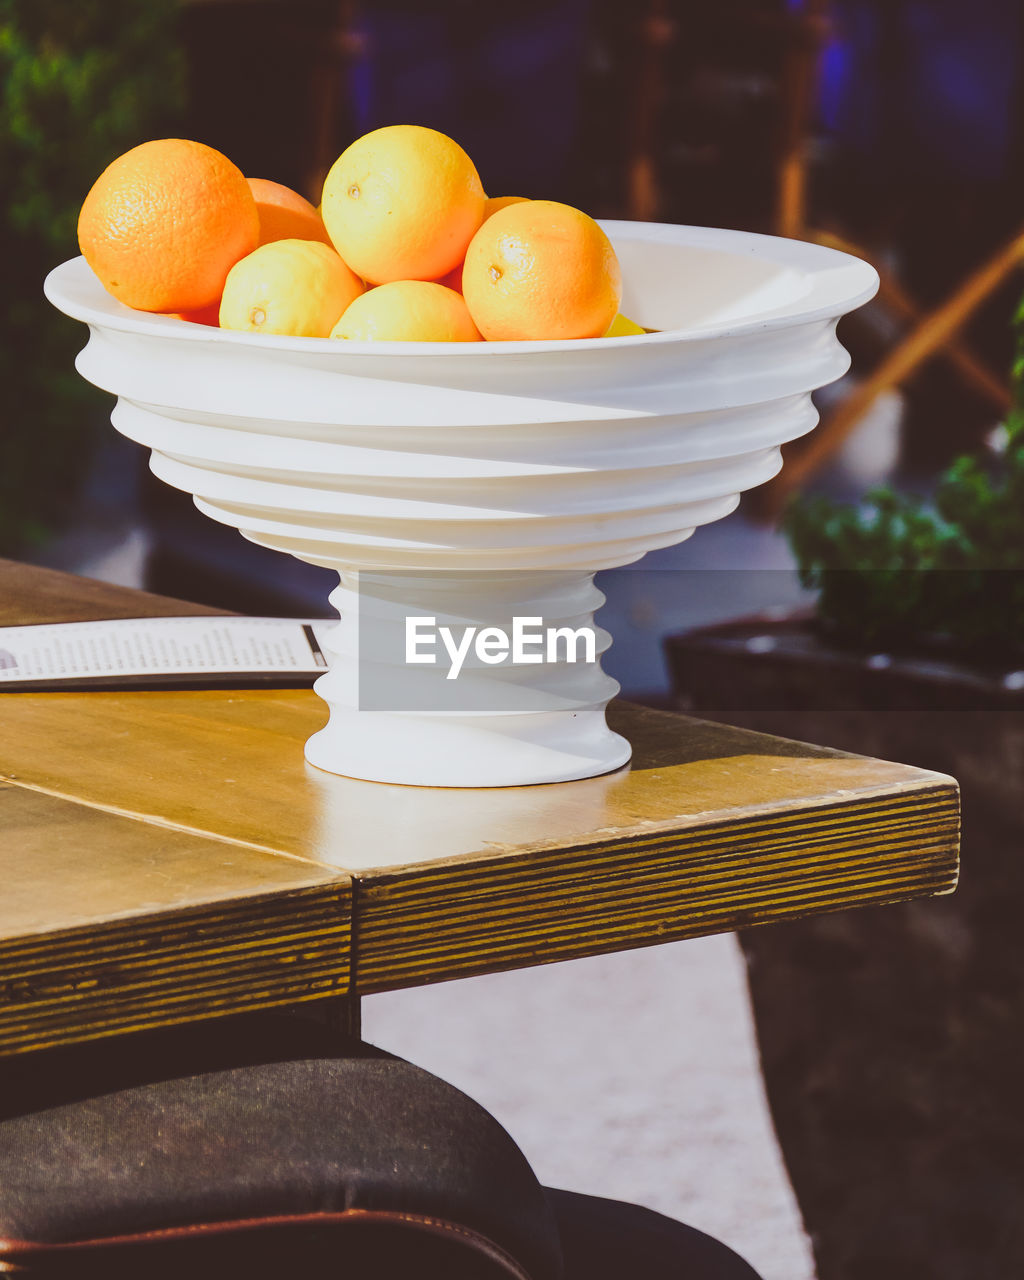 food, food and drink, fruit, freshness, focus on foreground, healthy eating, no people, wellbeing, close-up, table, still life, bowl, citrus fruit, household equipment, orange, orange color, day, outdoors, orange - fruit